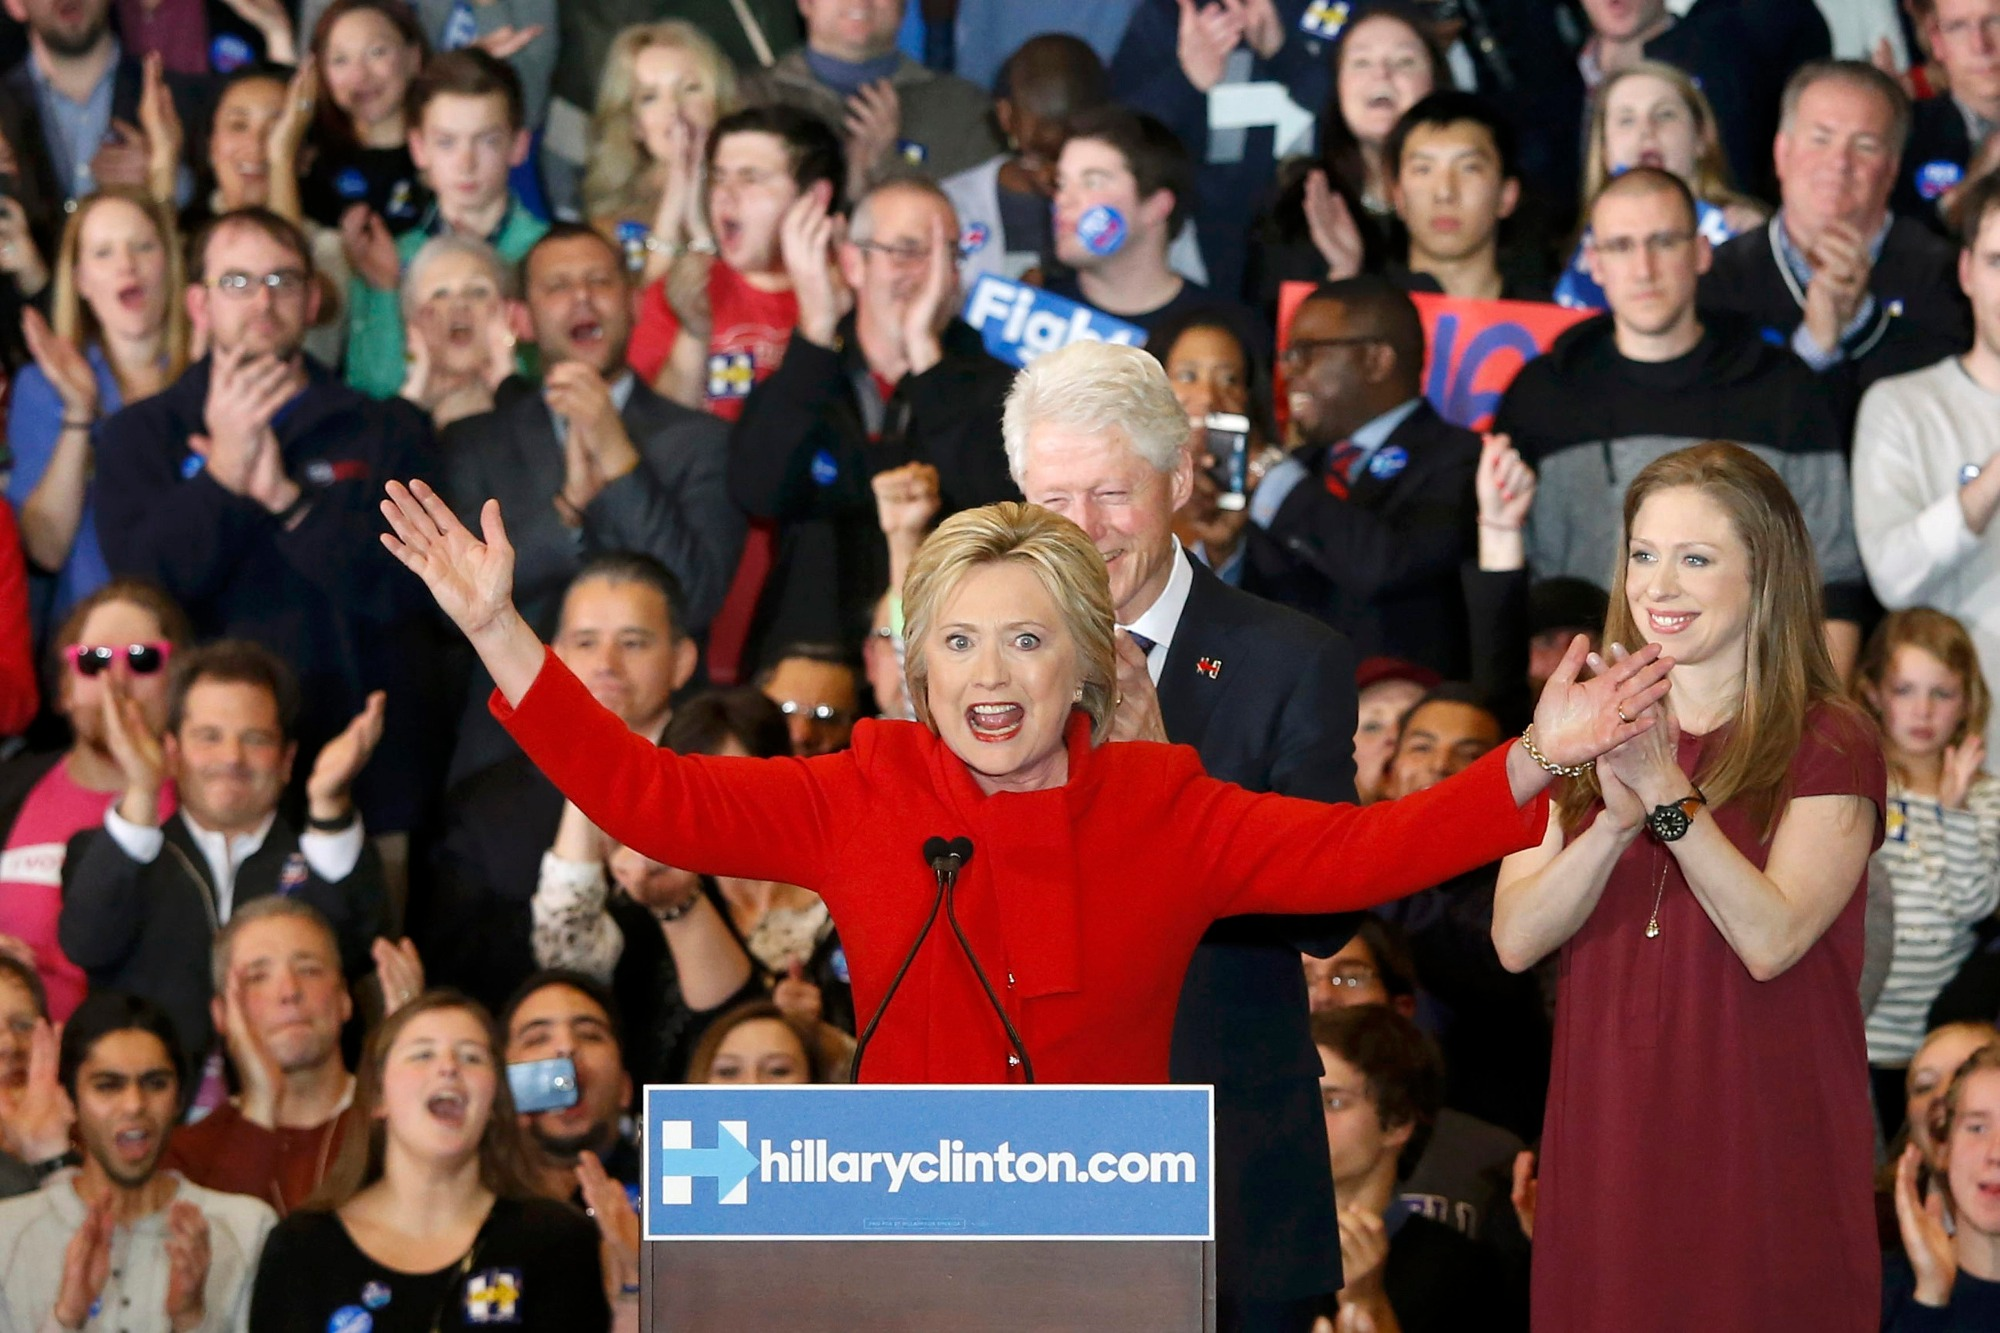 Former U.S. President Bill Clinton (rear) applauds his wife, Democratic U.S. presidential candidate Hillary Clinton, as they appear with their daughter Chelsea (R) at Mrs. Clinton's caucus night rally in Des Moines, Iowa February 1, 2016.     REUTERS/Adrees Latif